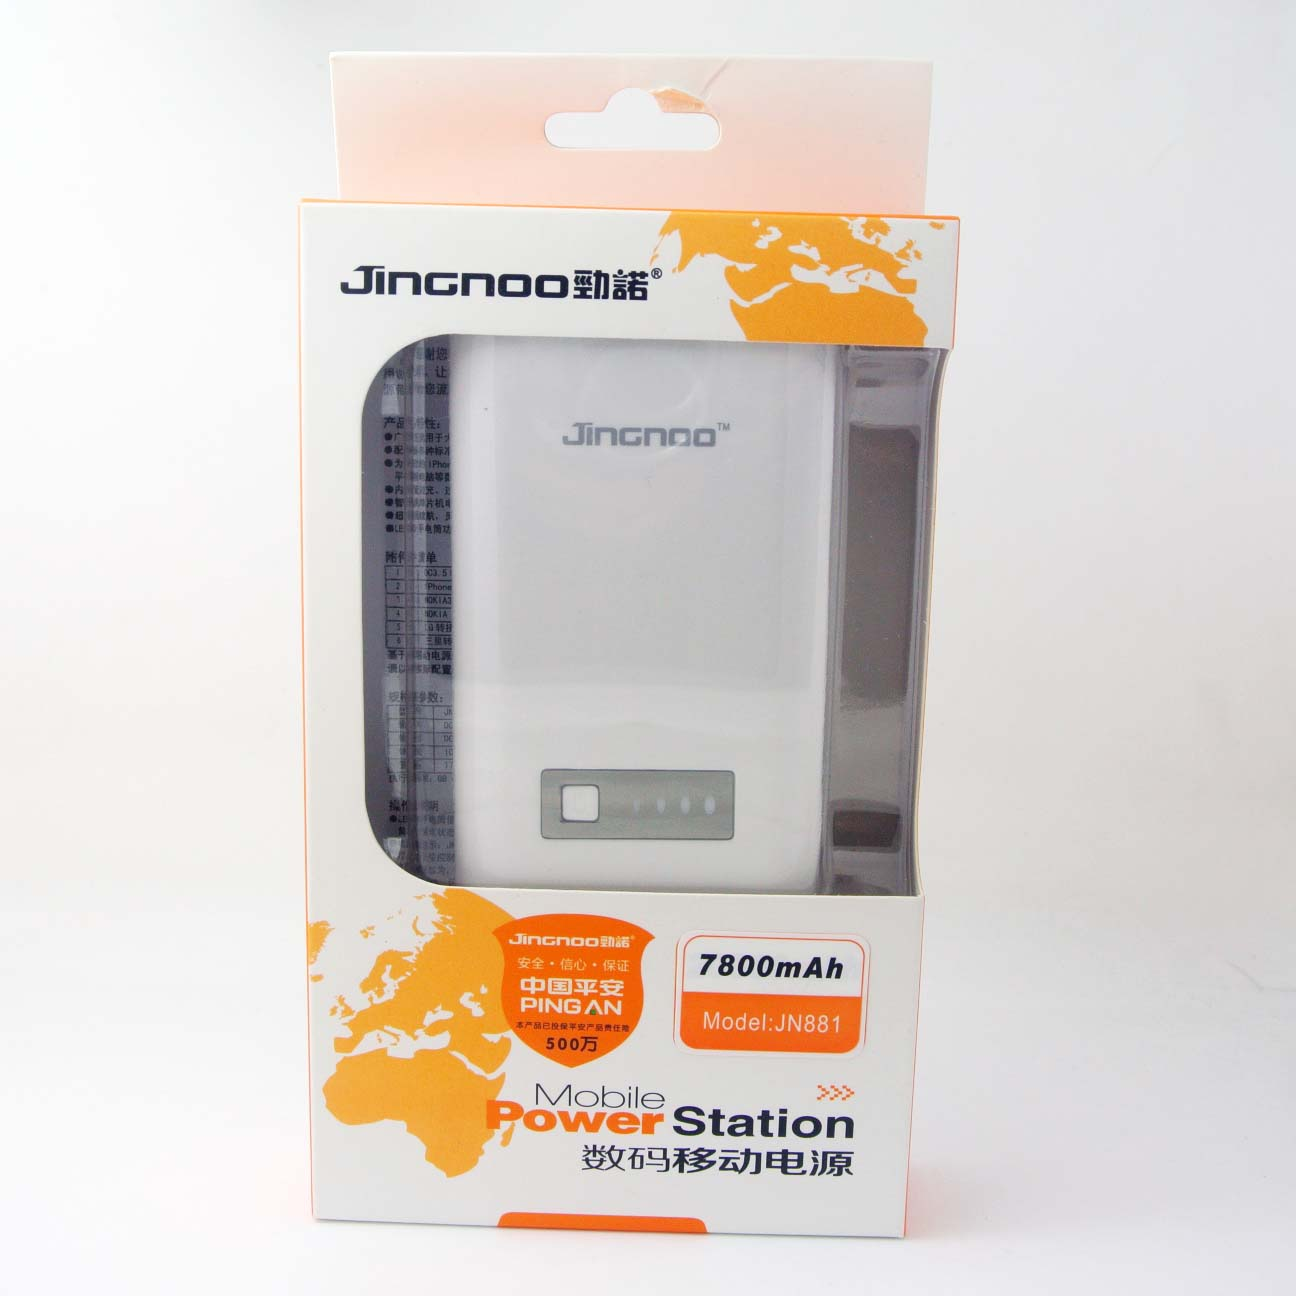 Jingnoo 7800mAh Power Bank